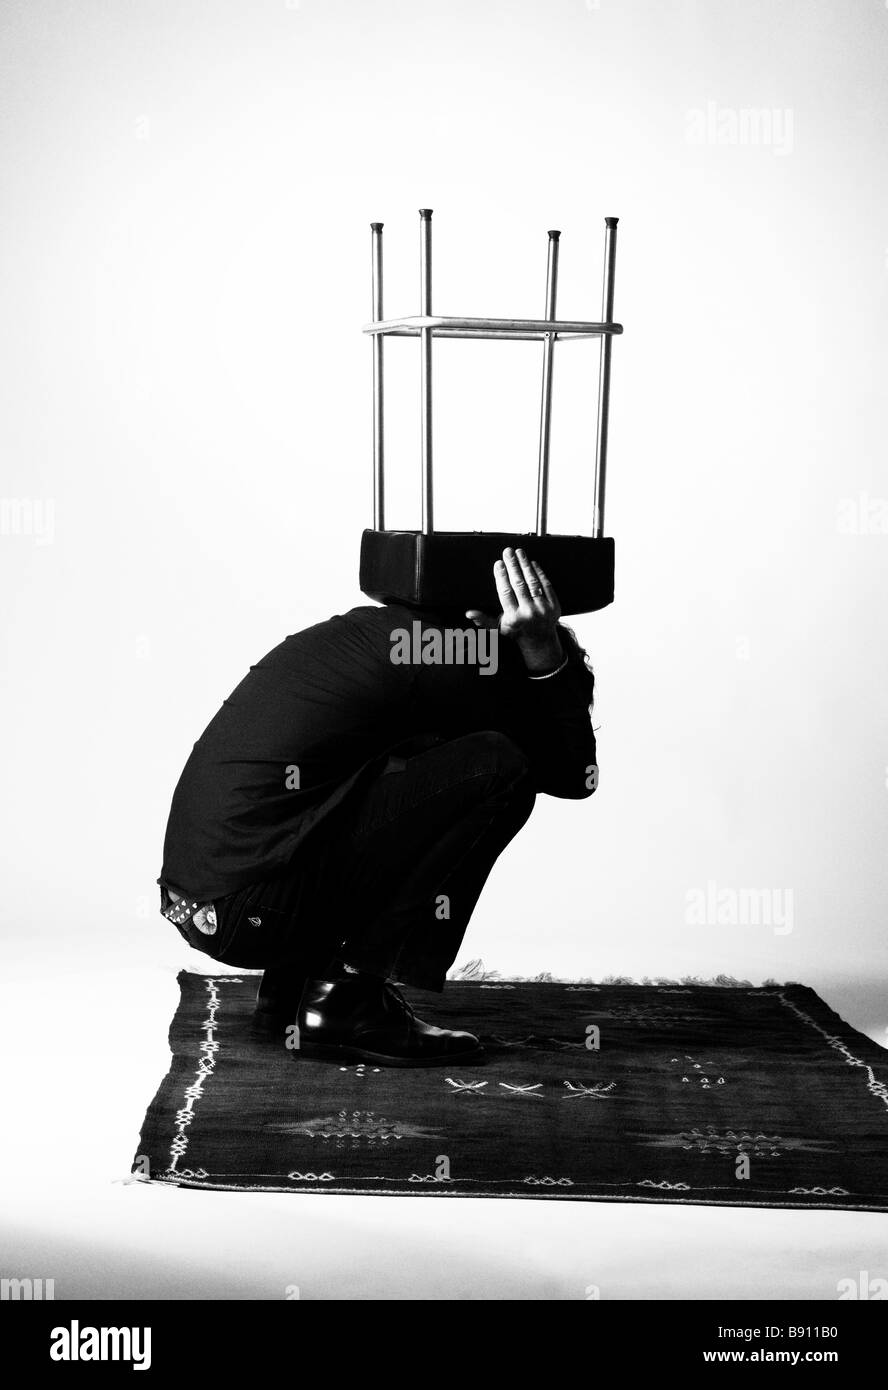 A man with a stool on his head. - Stock Image